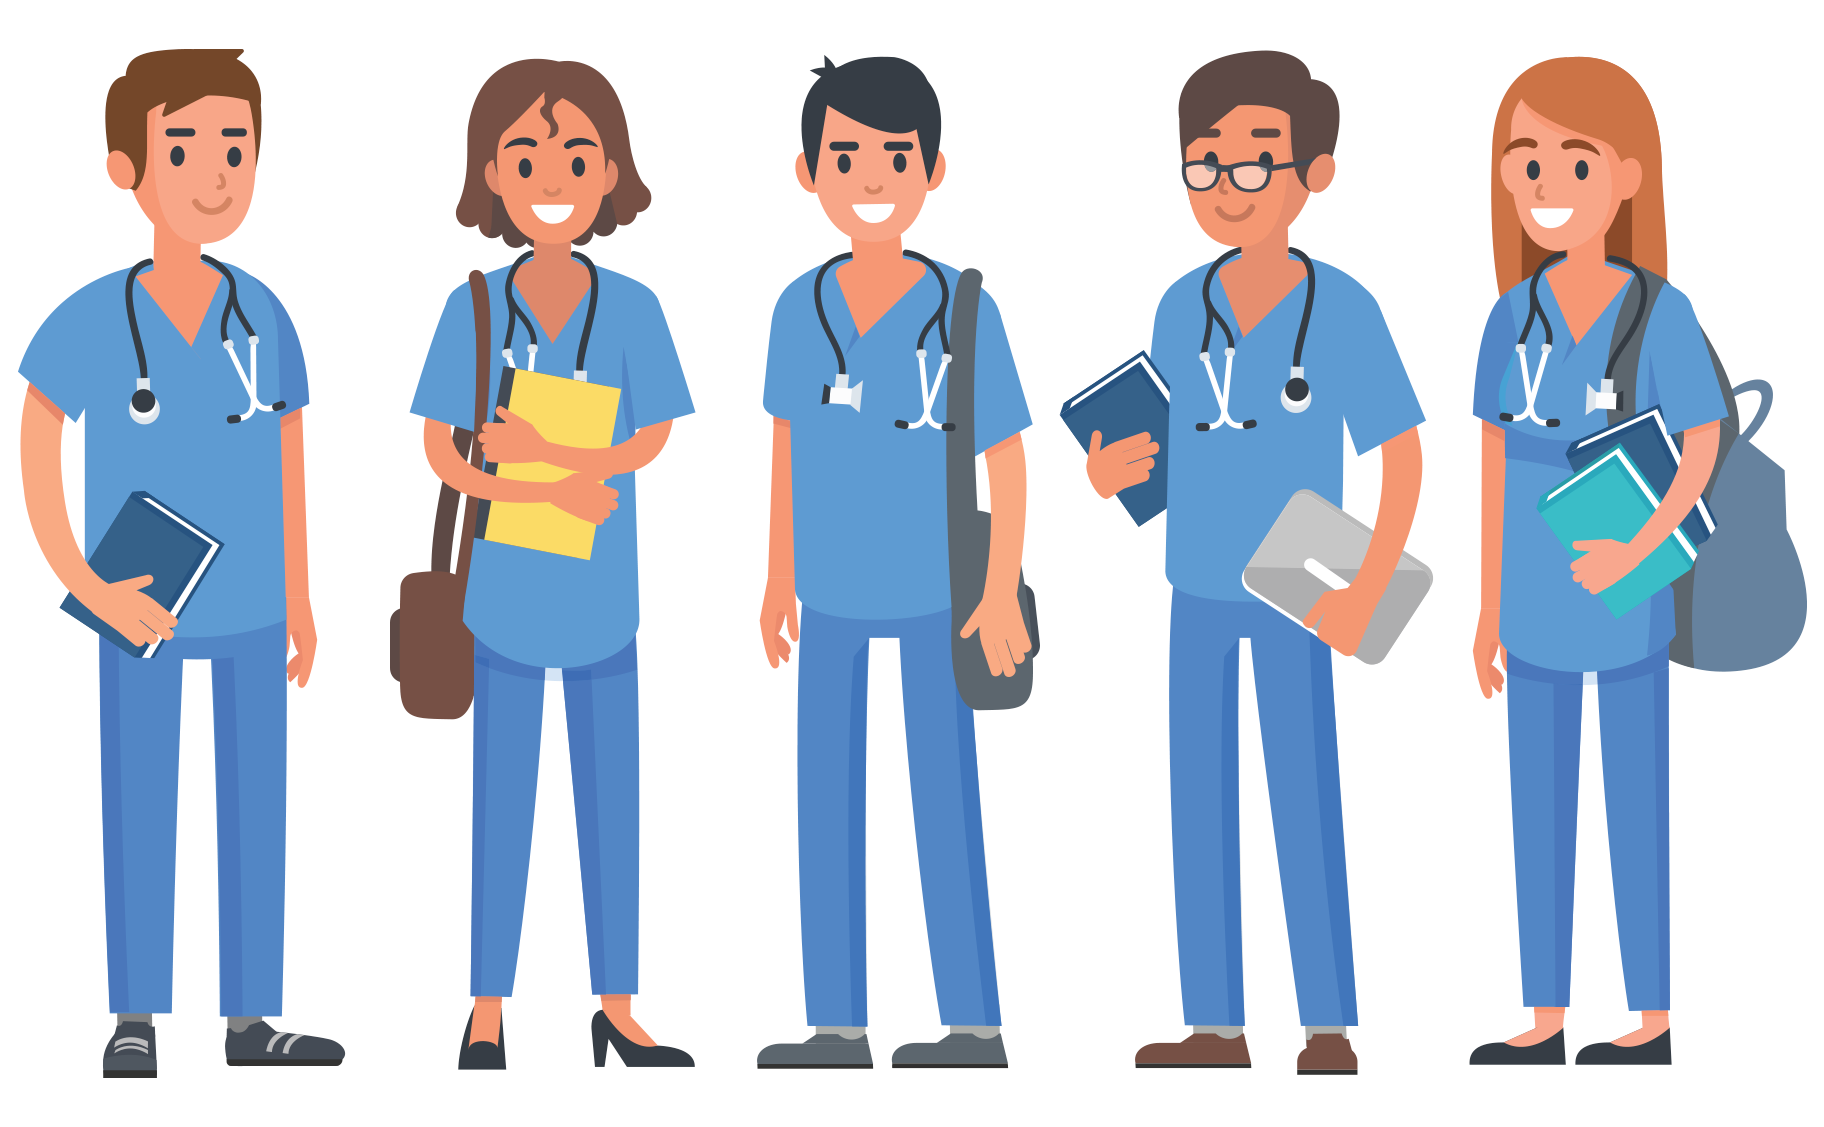 Illustration of five medical students standing in a line